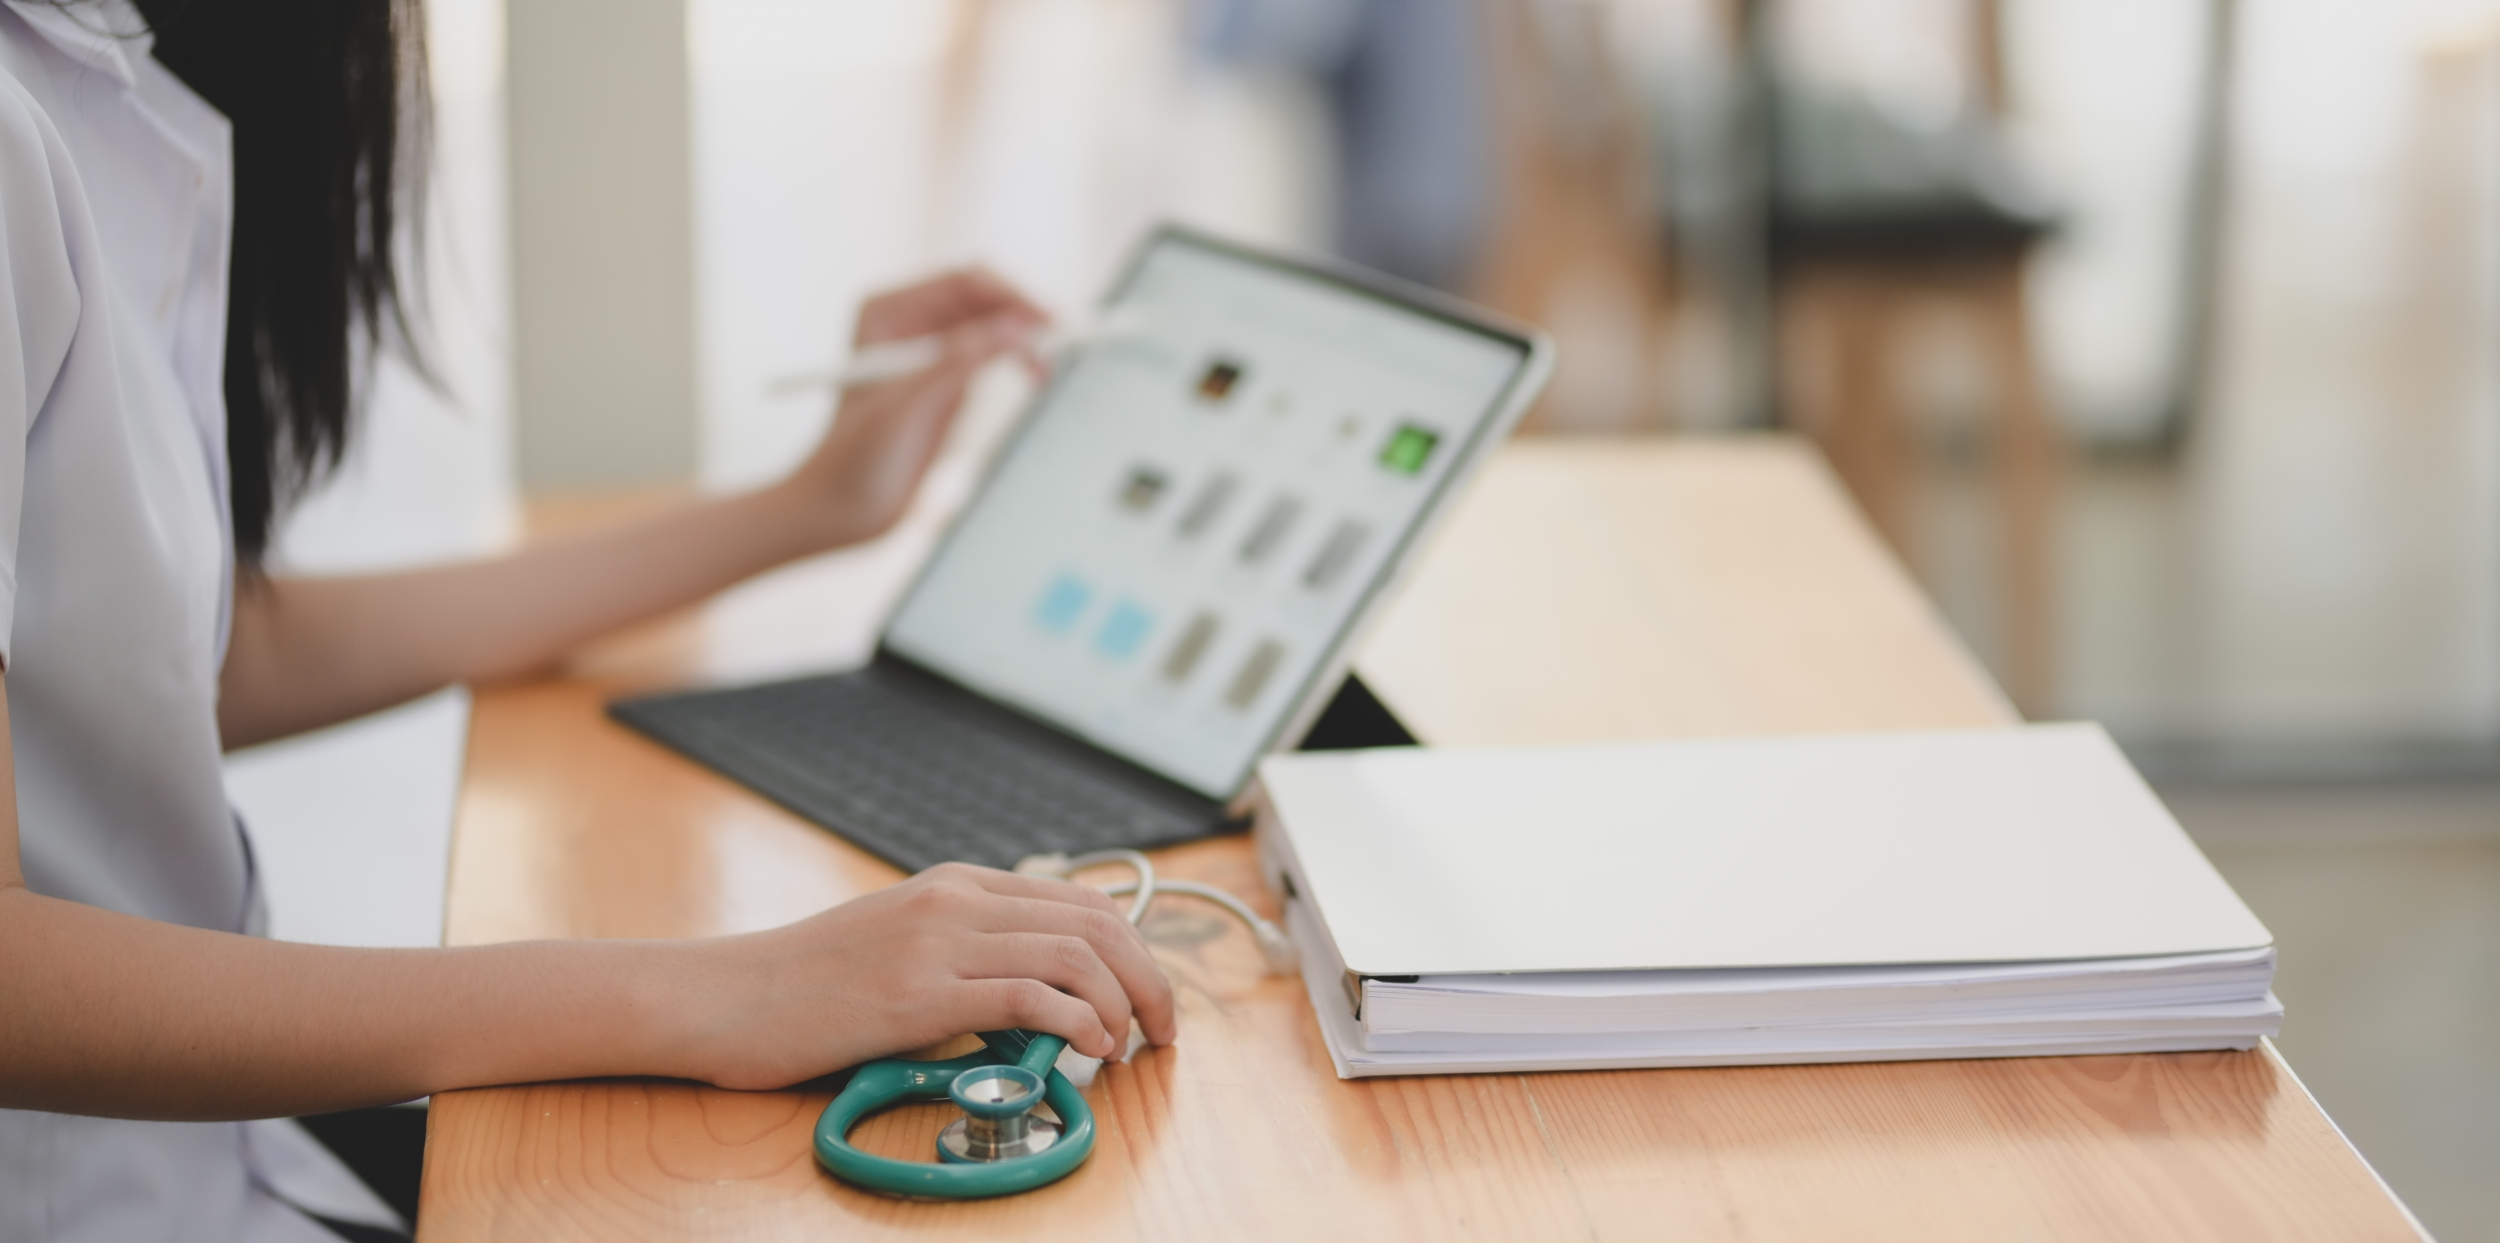 The Key Benefits of Using Medical Billing Software for Your Medical Practice